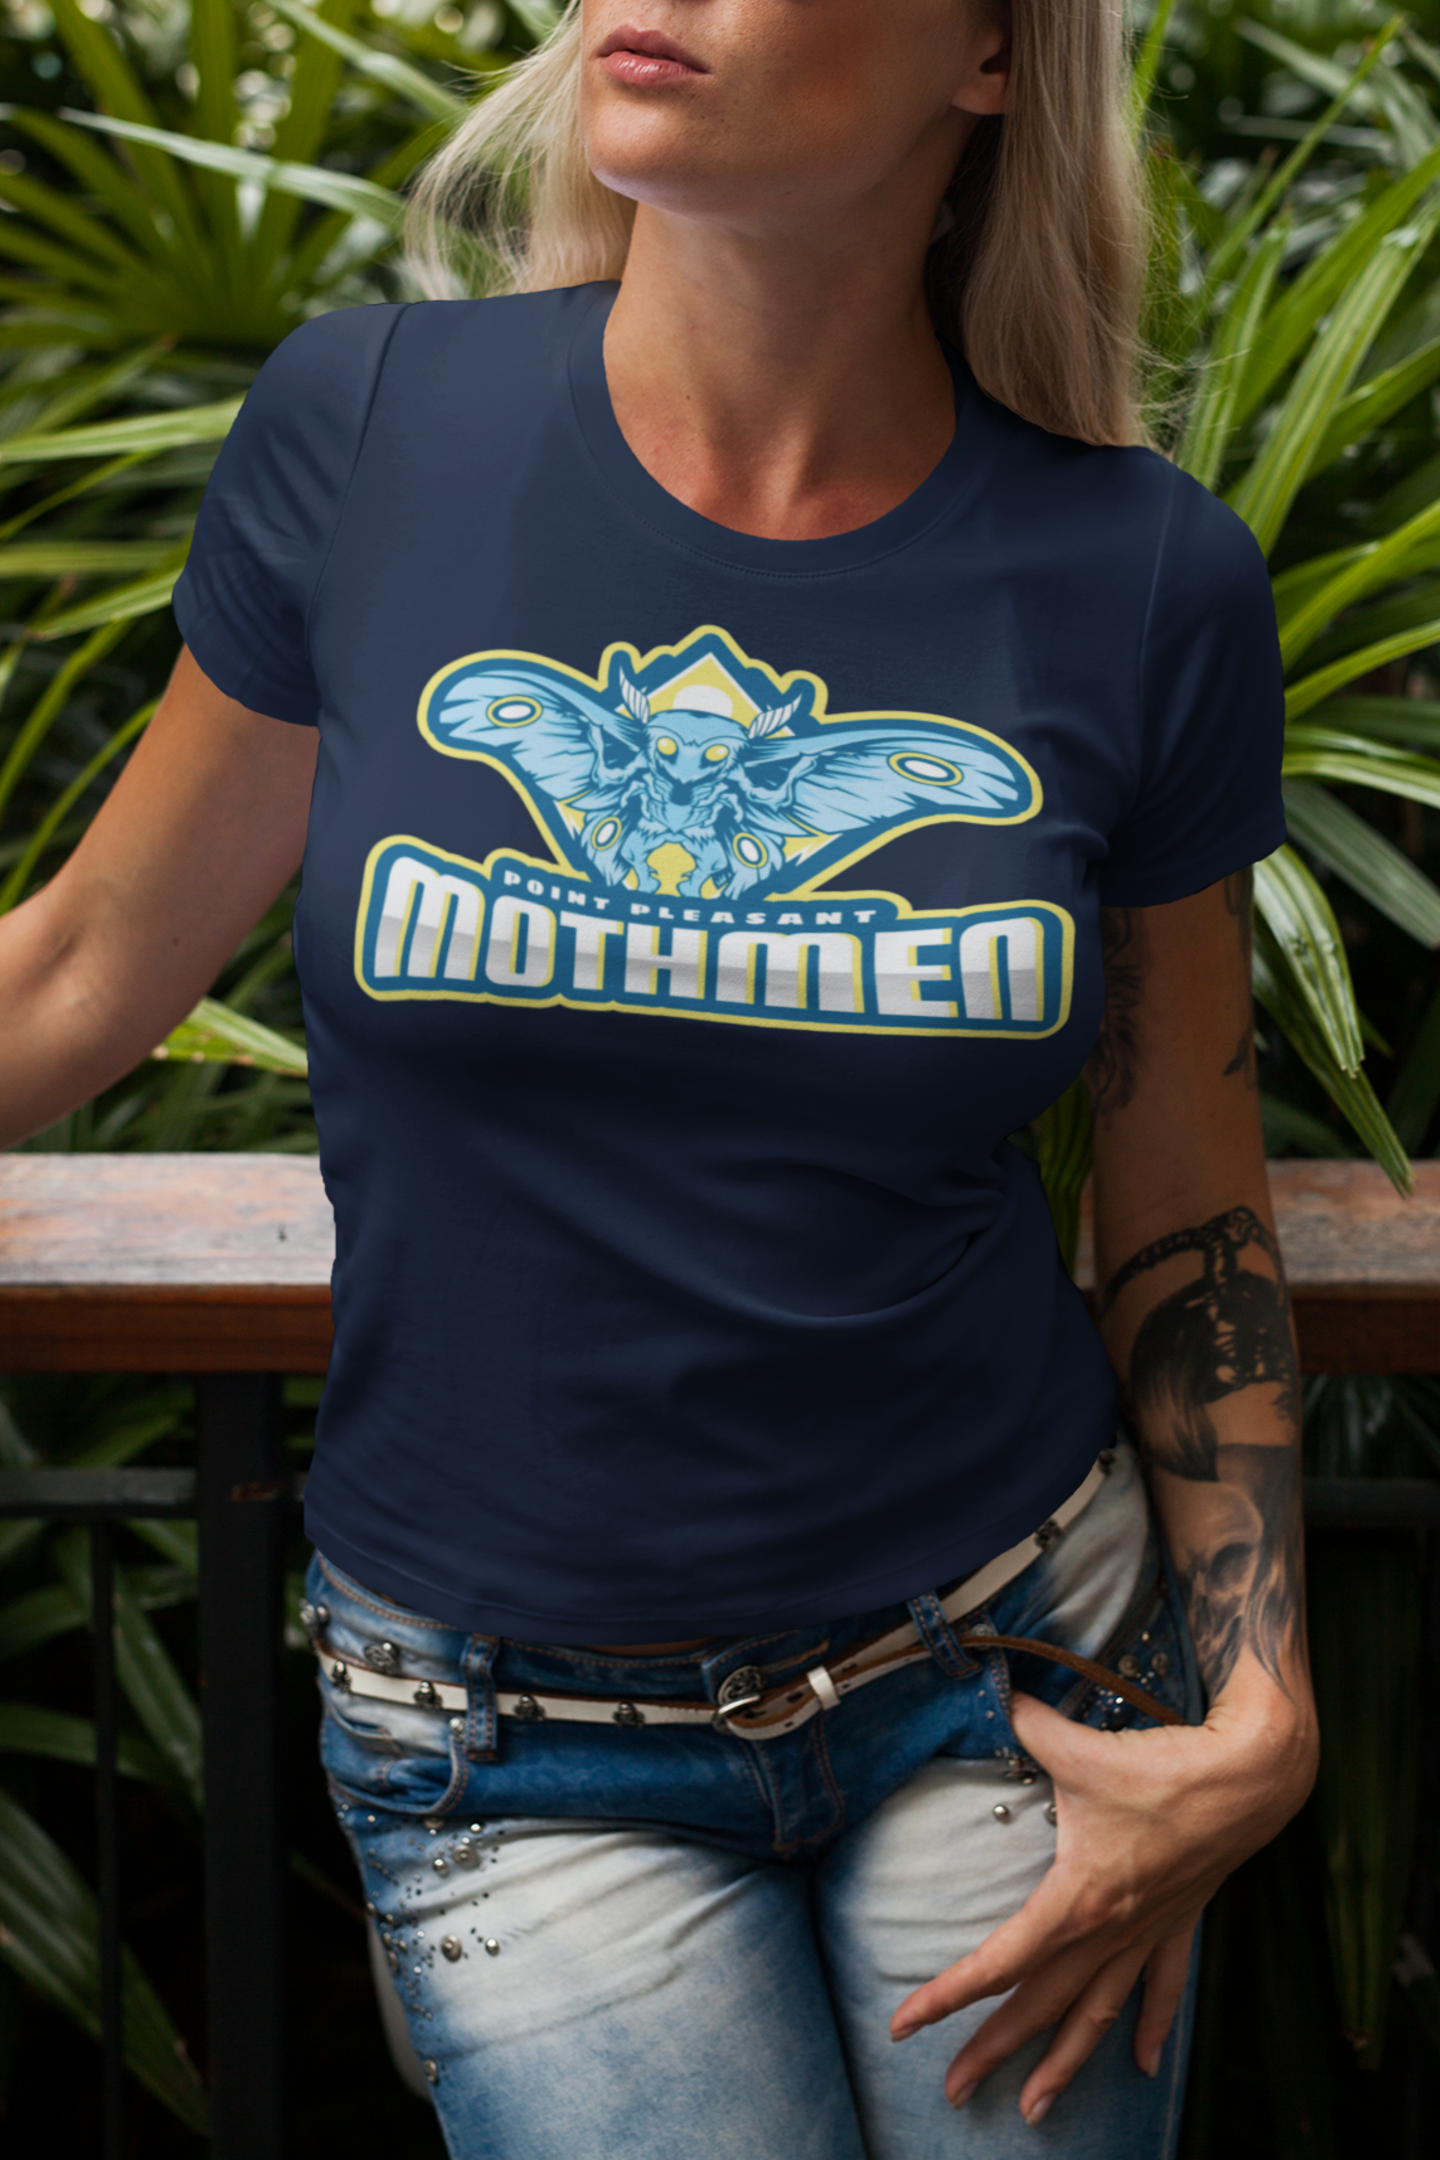 Point Pleasant Mothmen Women's navy